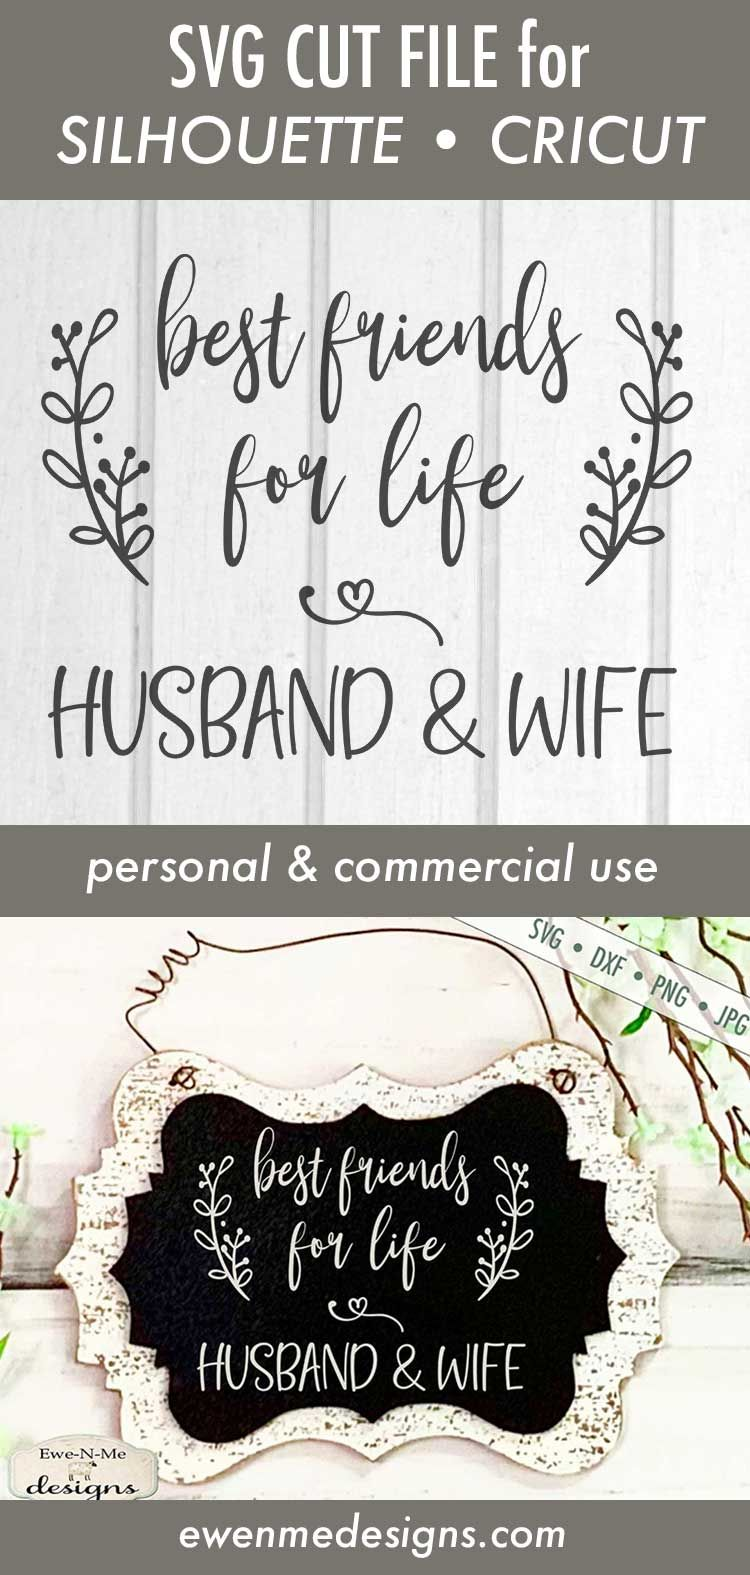 Best Friends For Life Husband Wife Wedding Svg In 2020 Best Friends For Life Valentines Svg Svg